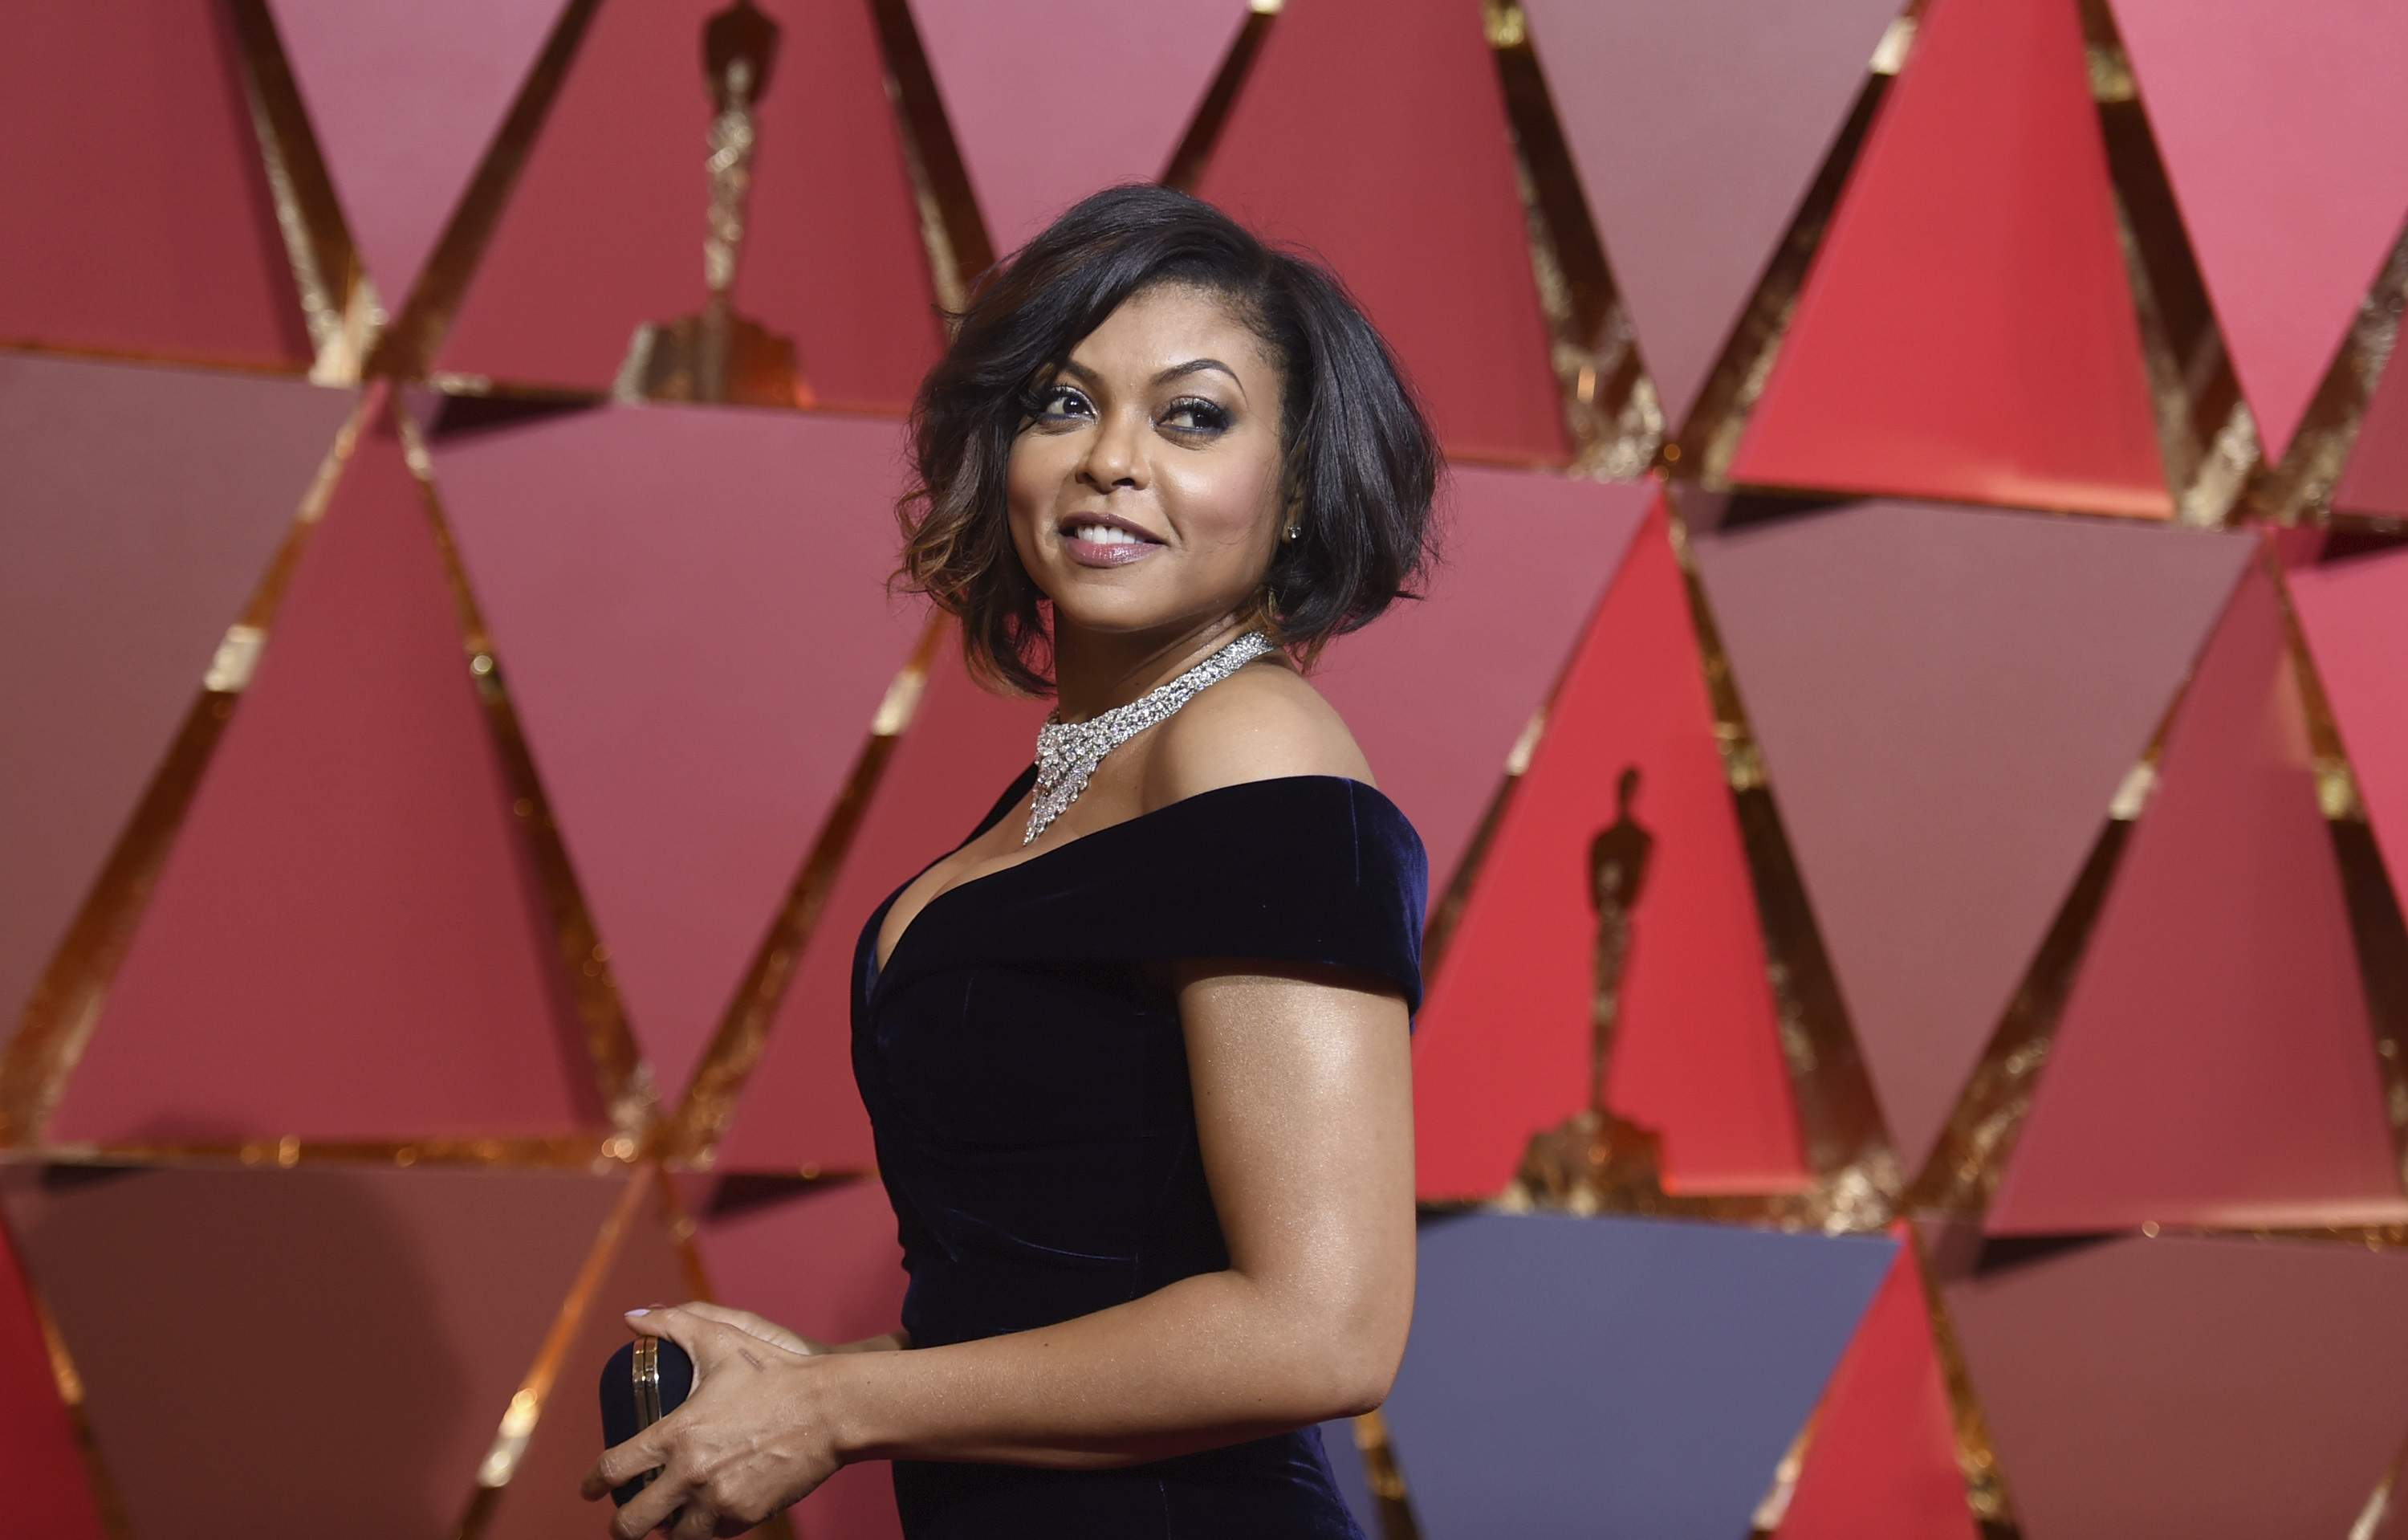 Taraji P. Henson arrives at the Oscars on Sunday, Feb. 26, 2017, at the Dolby Theatre in Los Angeles. THE ASSOCIATED PRESS